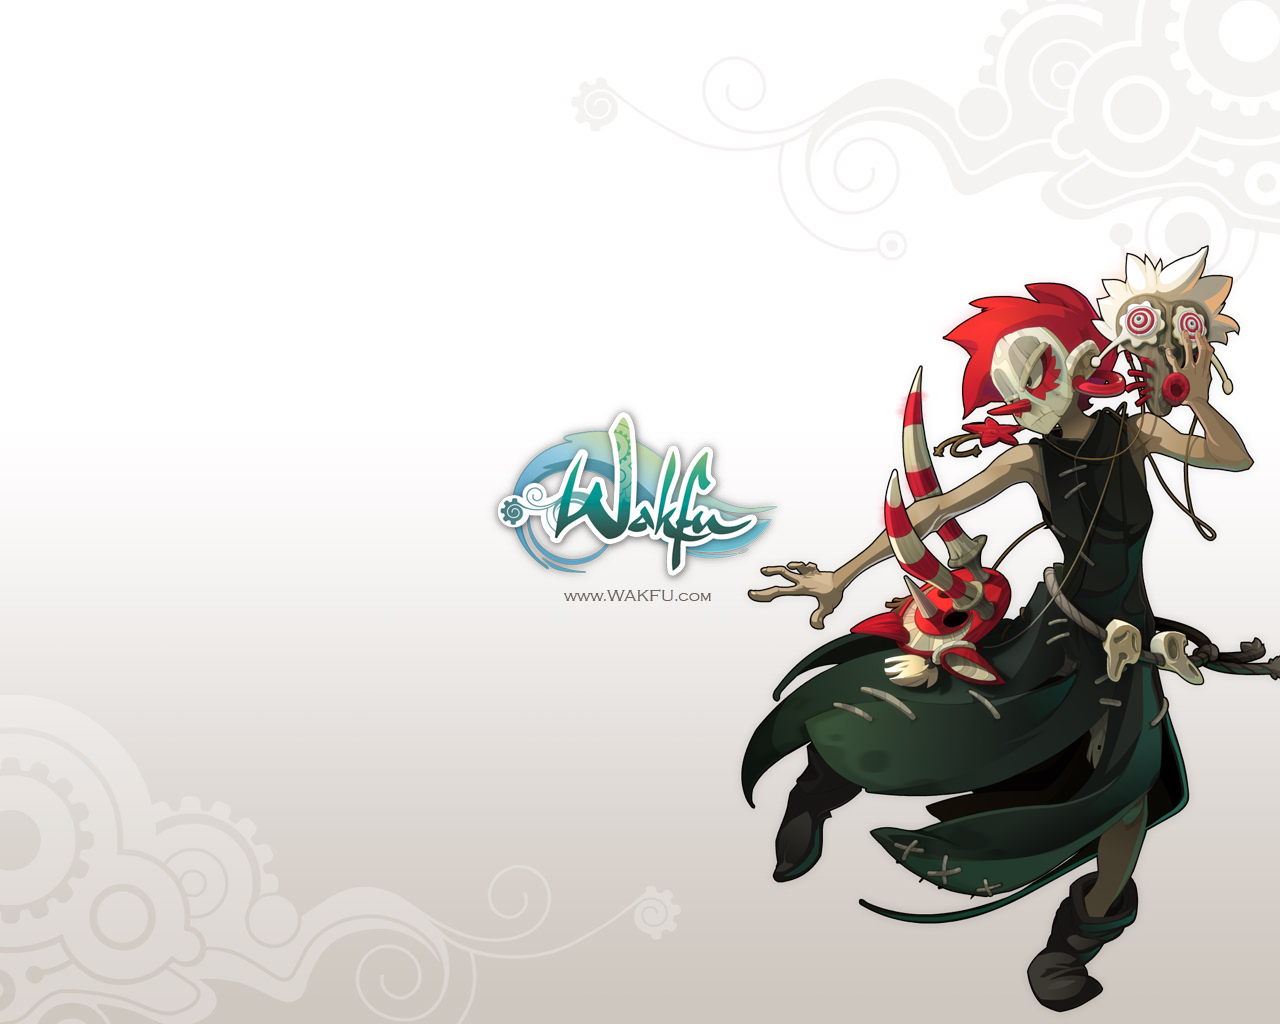 1000 images about wakfu on pinterest portal wiki page